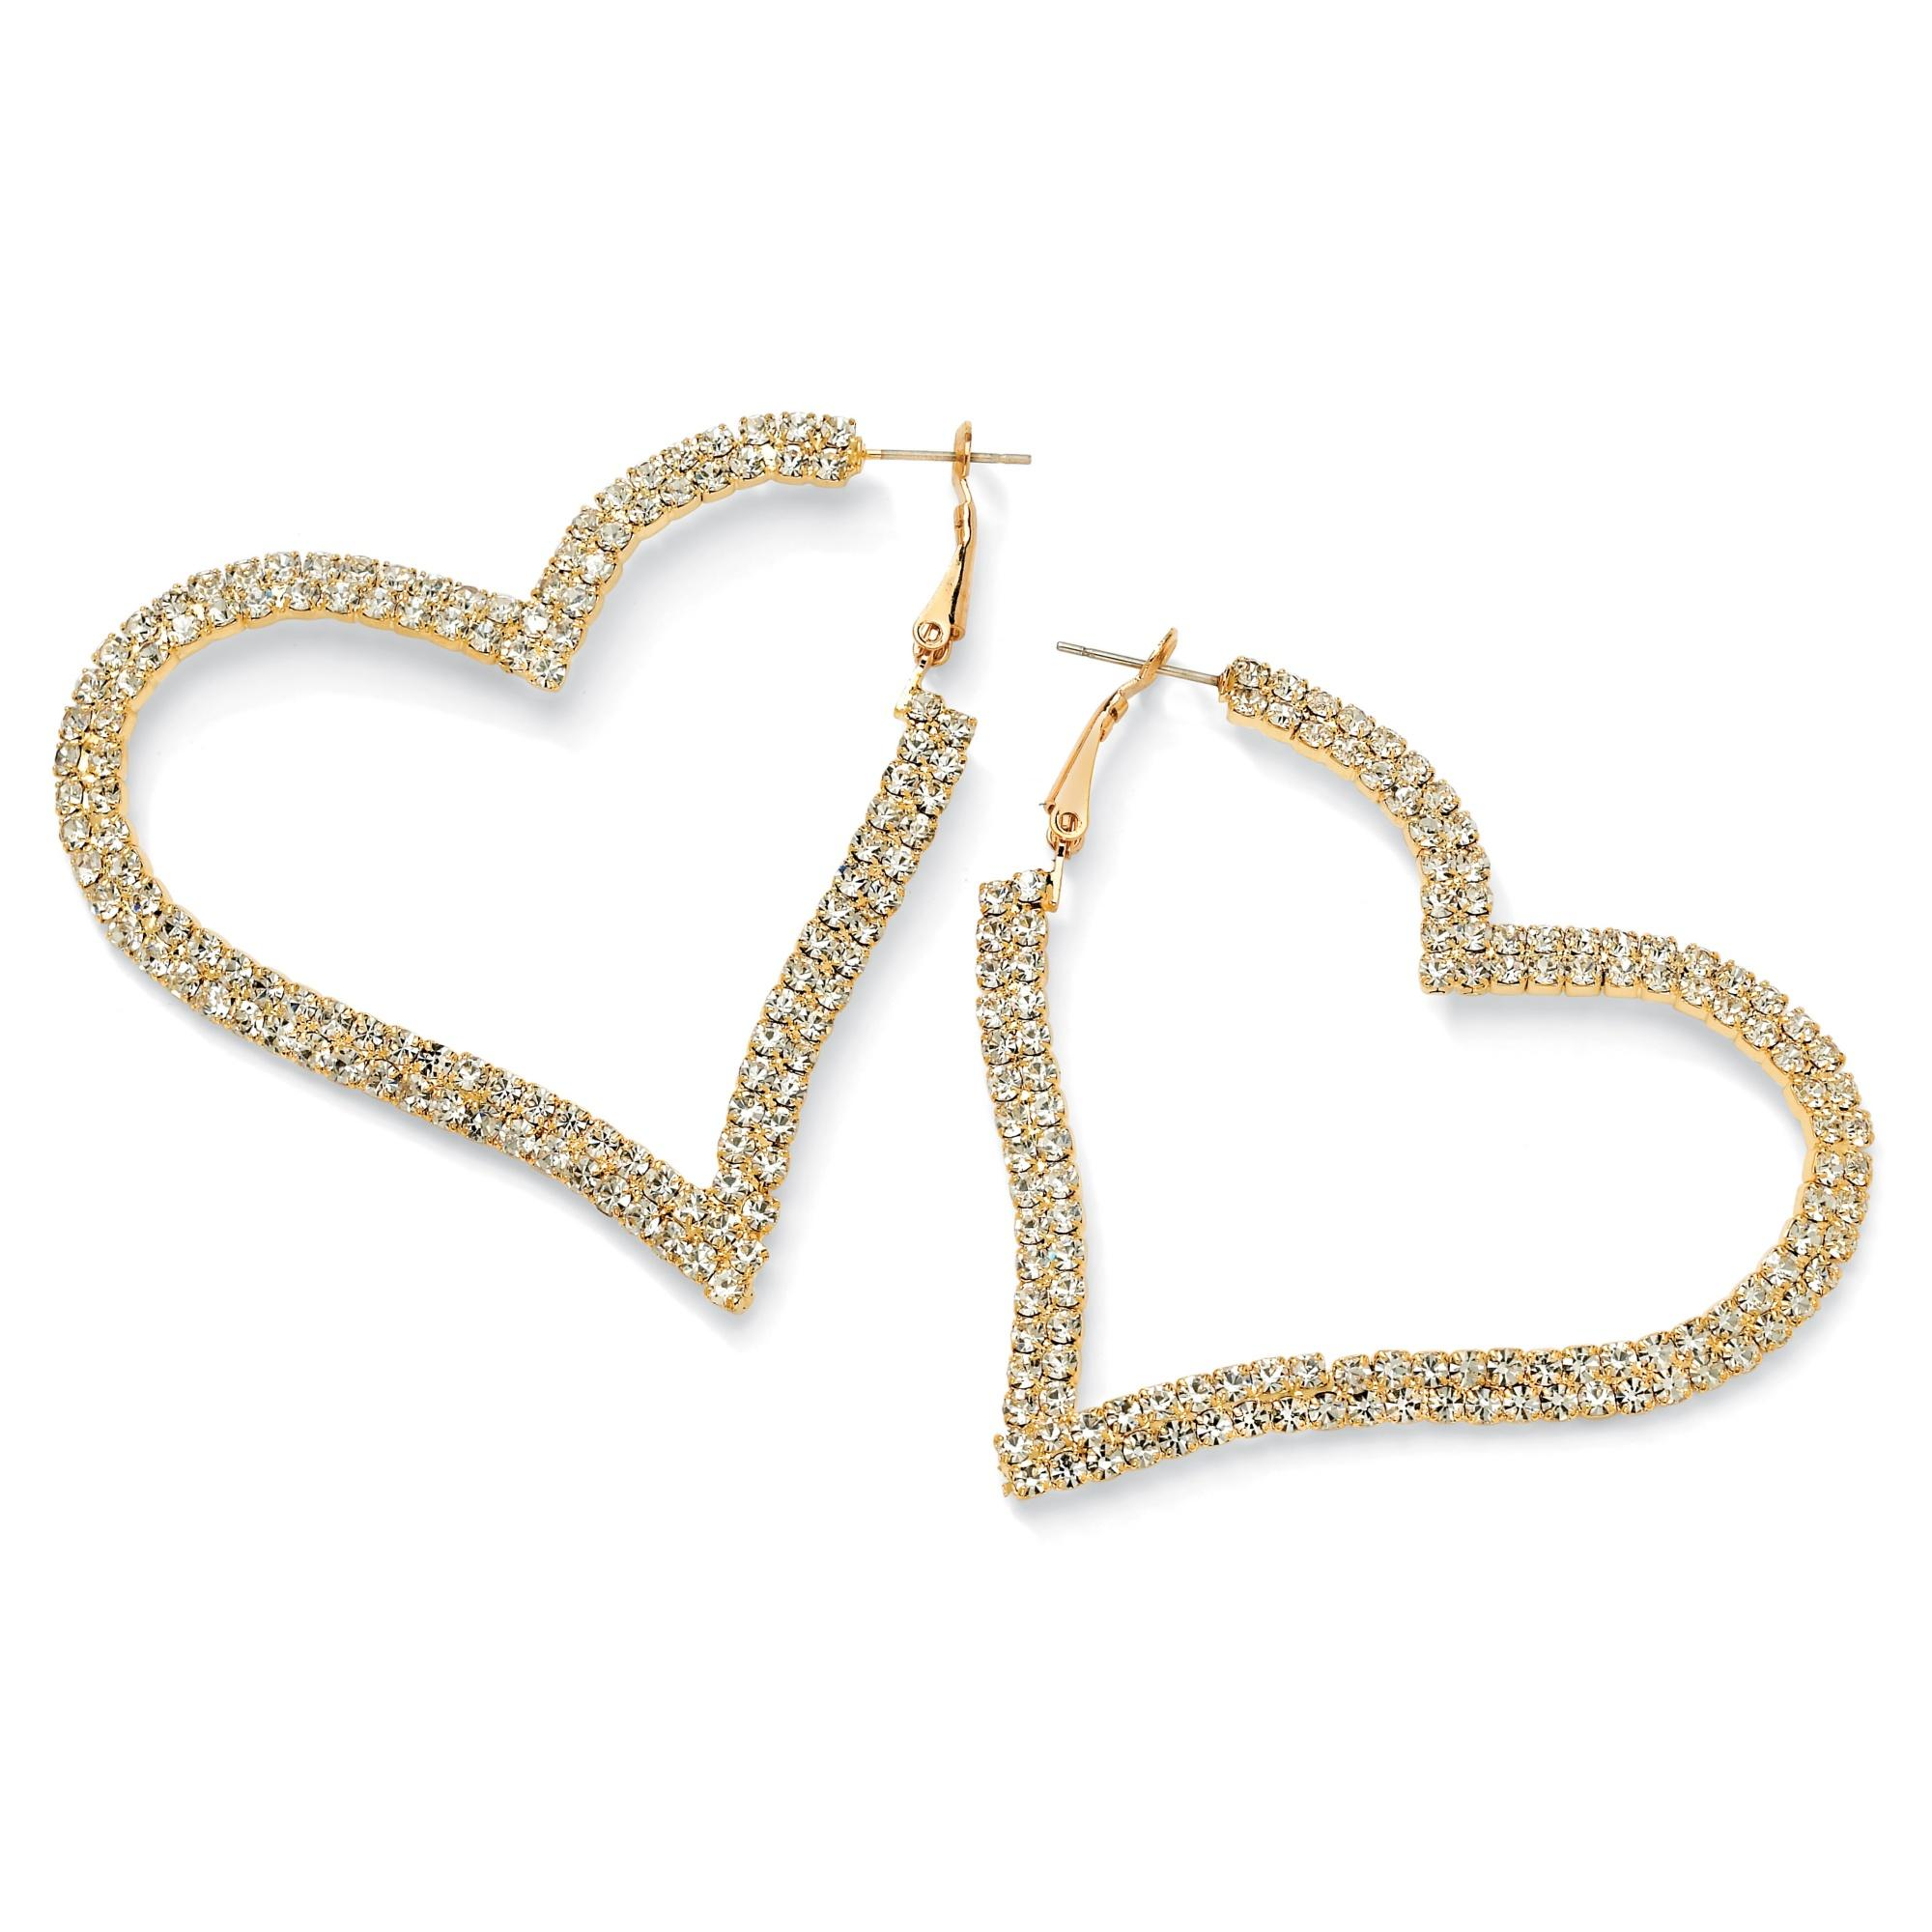 Crystal Heart Hoop Earrings in Yellow Gold Tone Bold Fashion